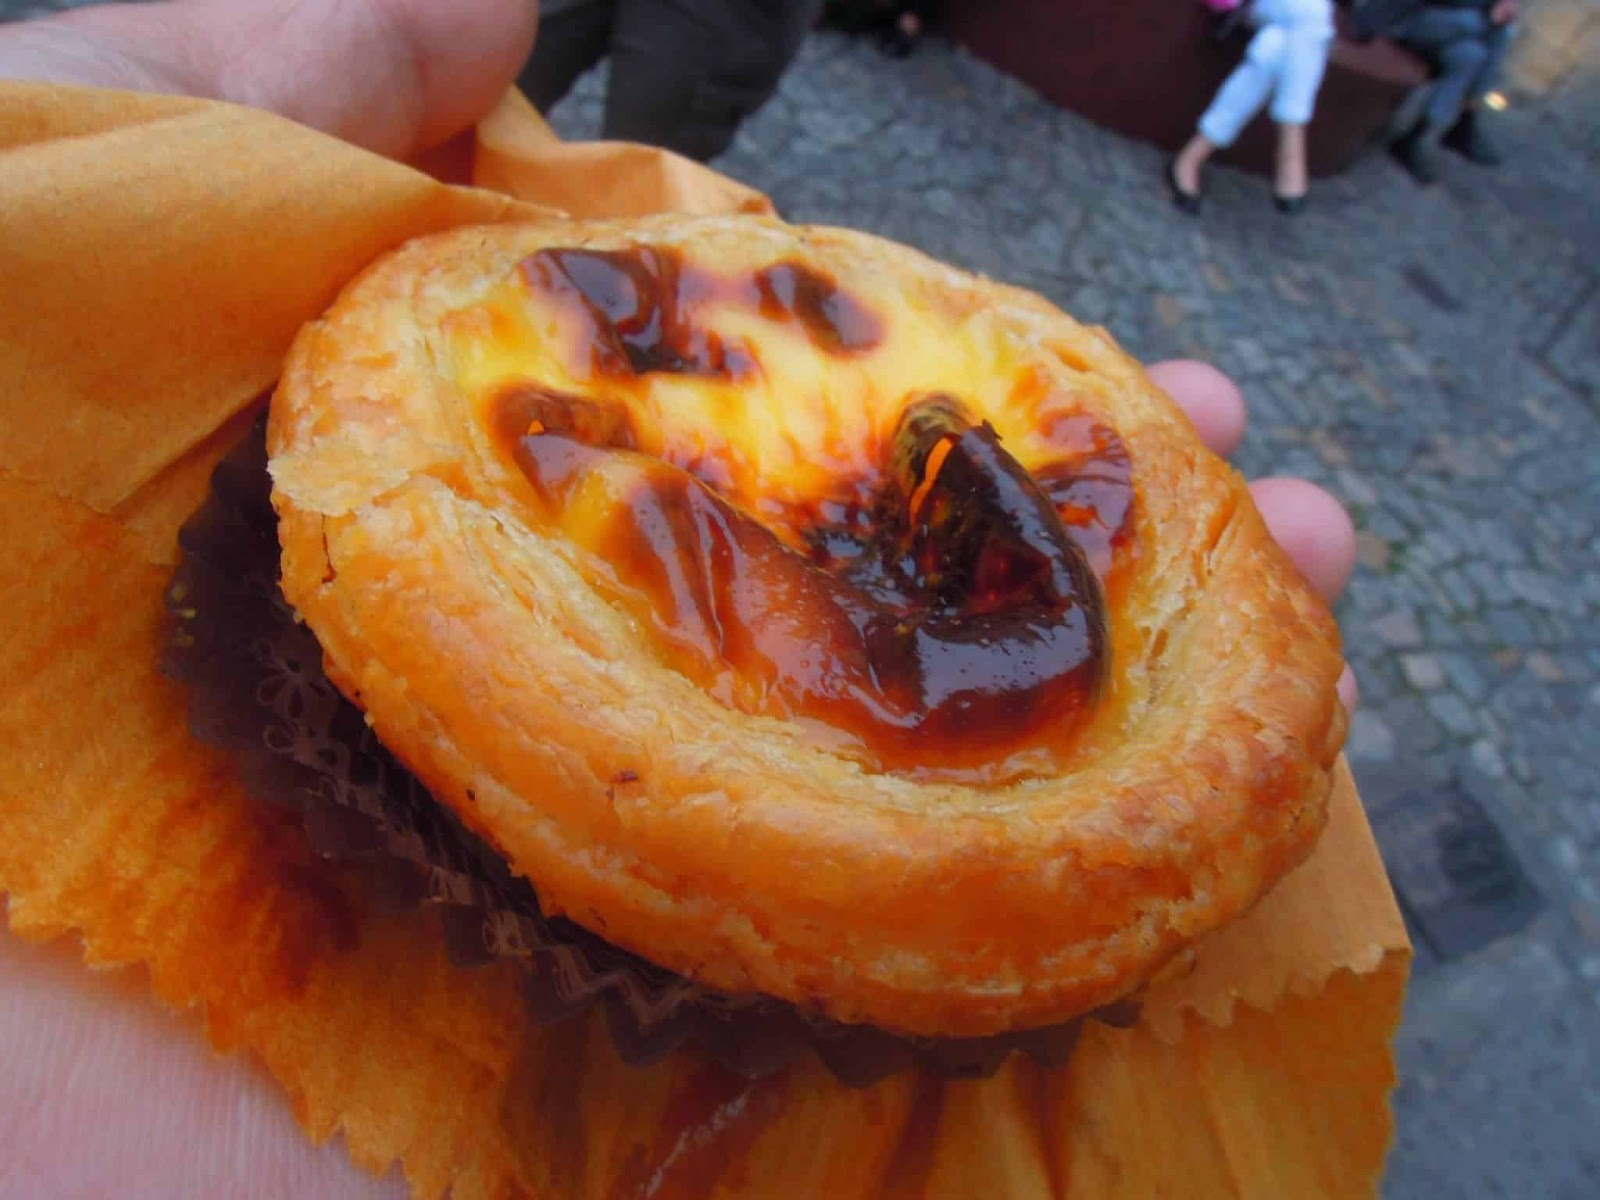 A close up photograph of an egg tart being sold in the streets in Macau